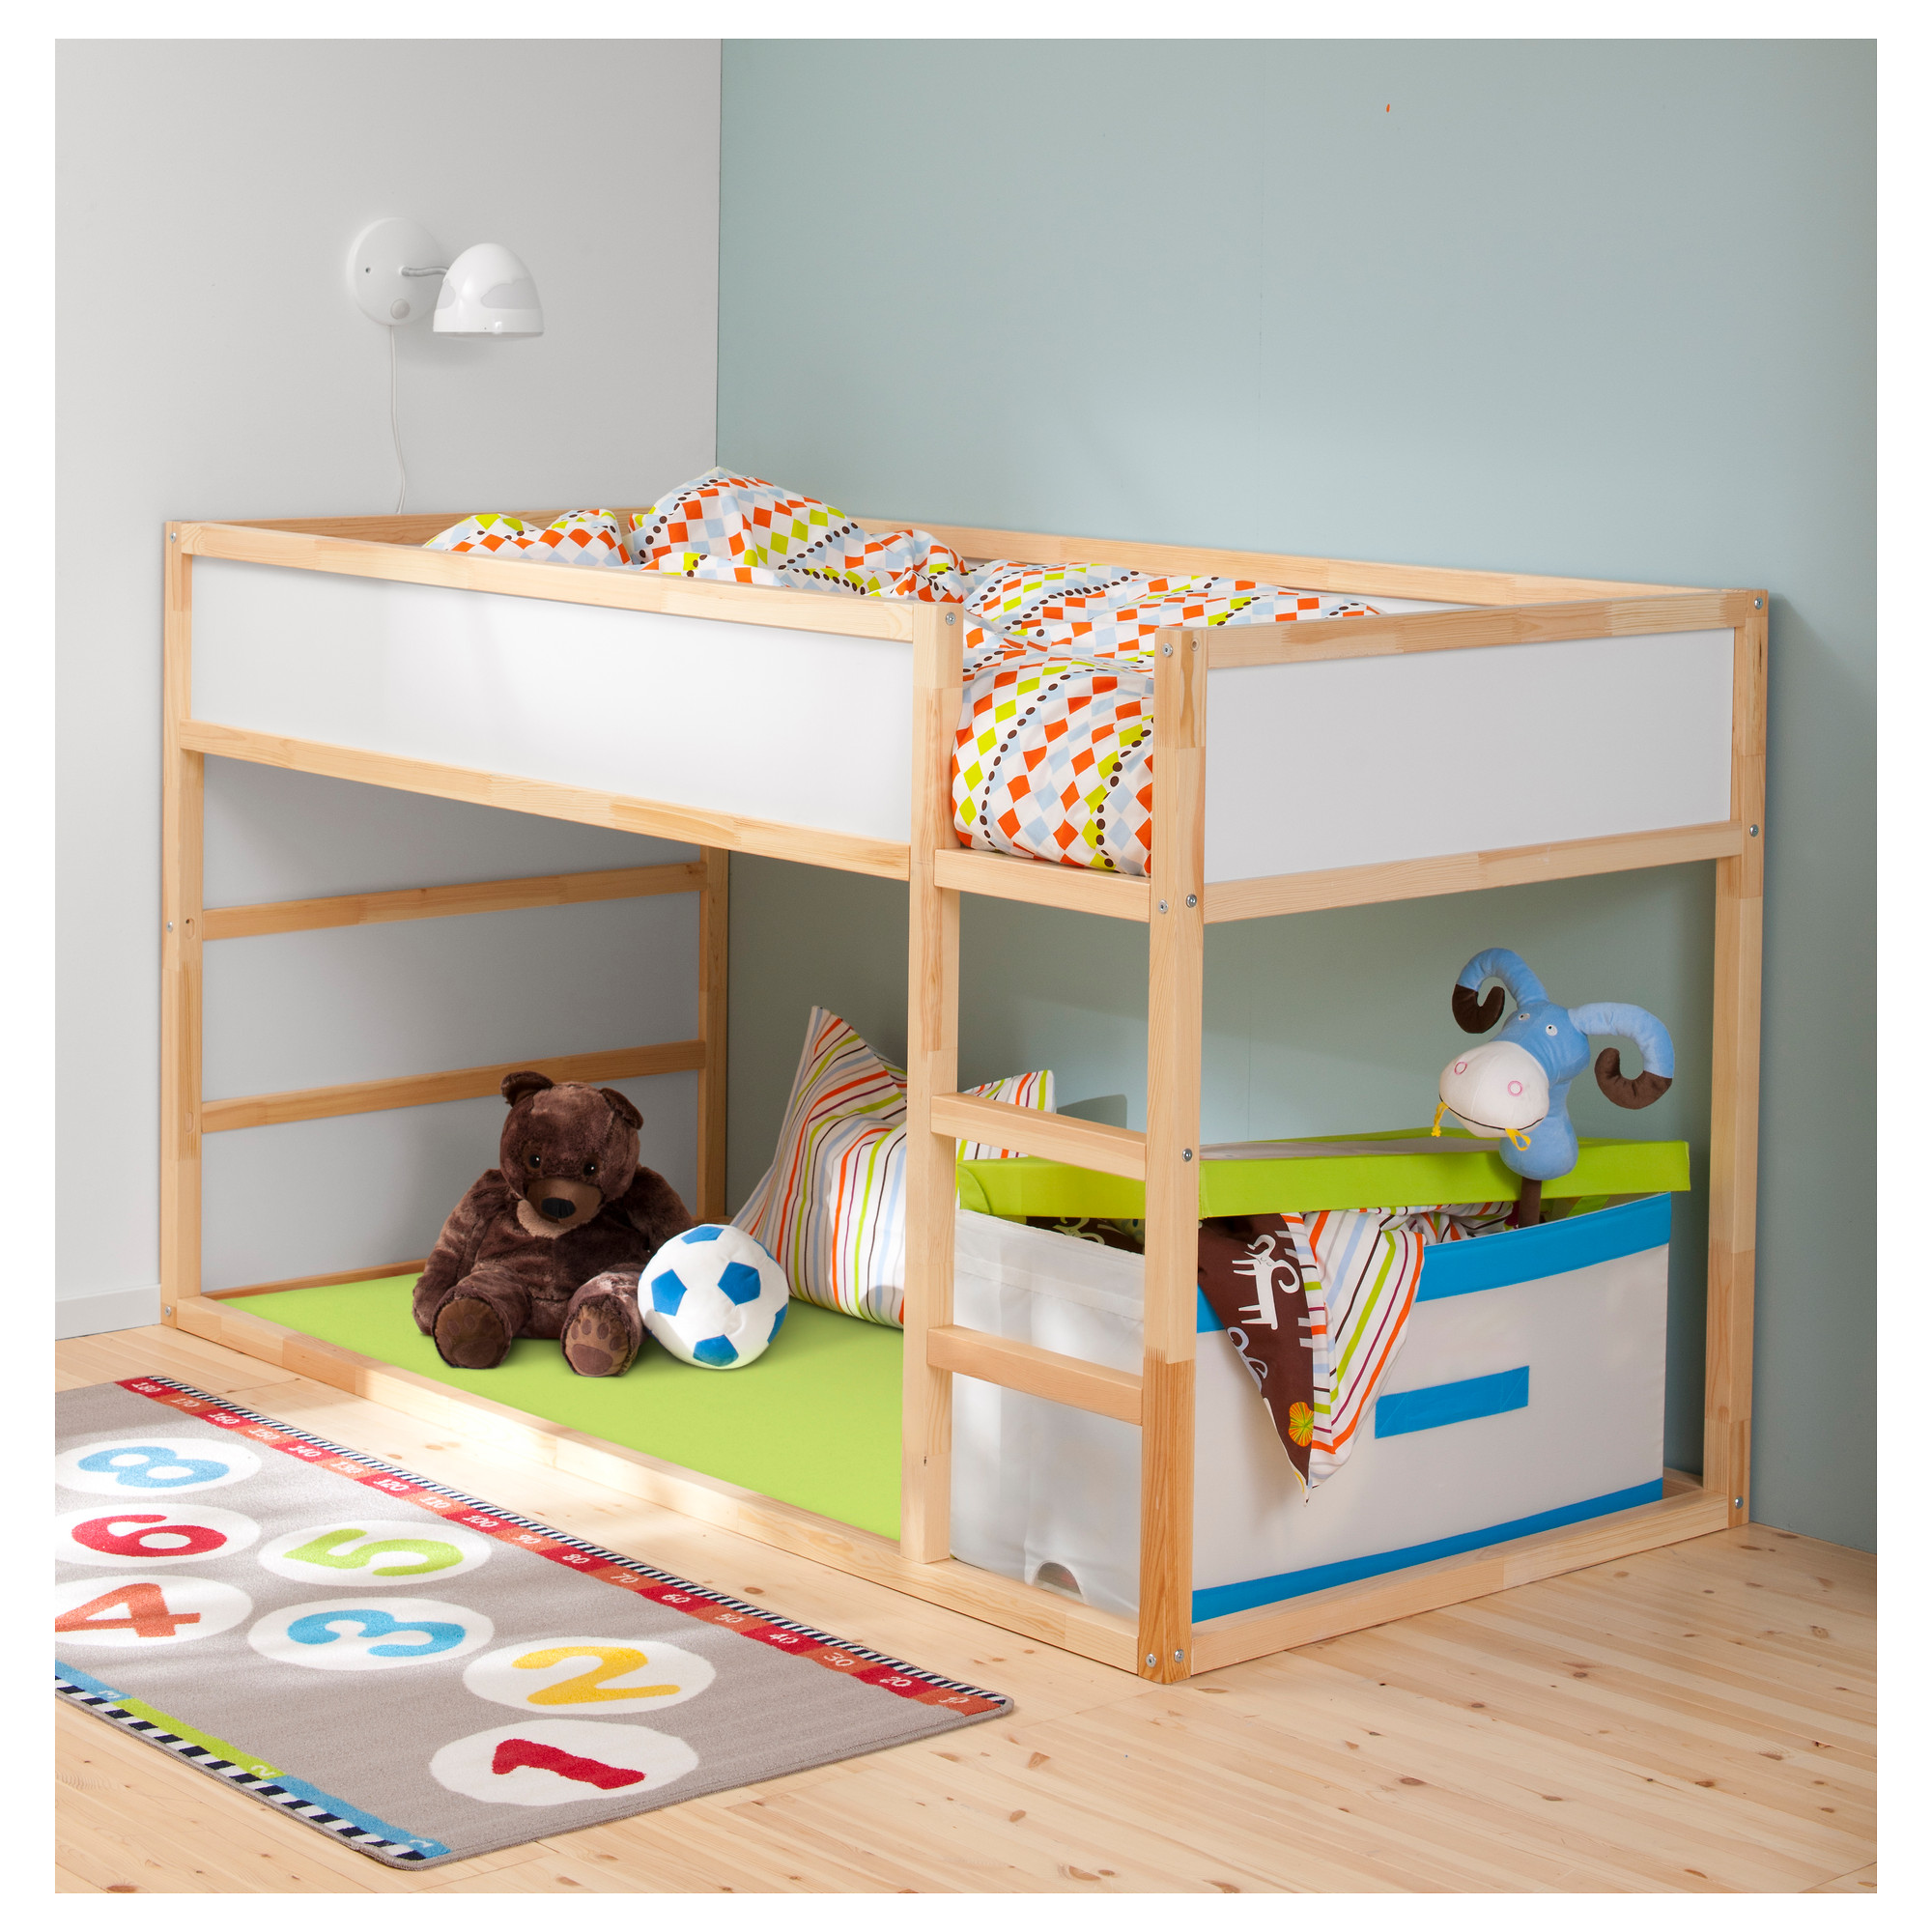 ikea kids loft bed a space efficient furniture idea for. Black Bedroom Furniture Sets. Home Design Ideas